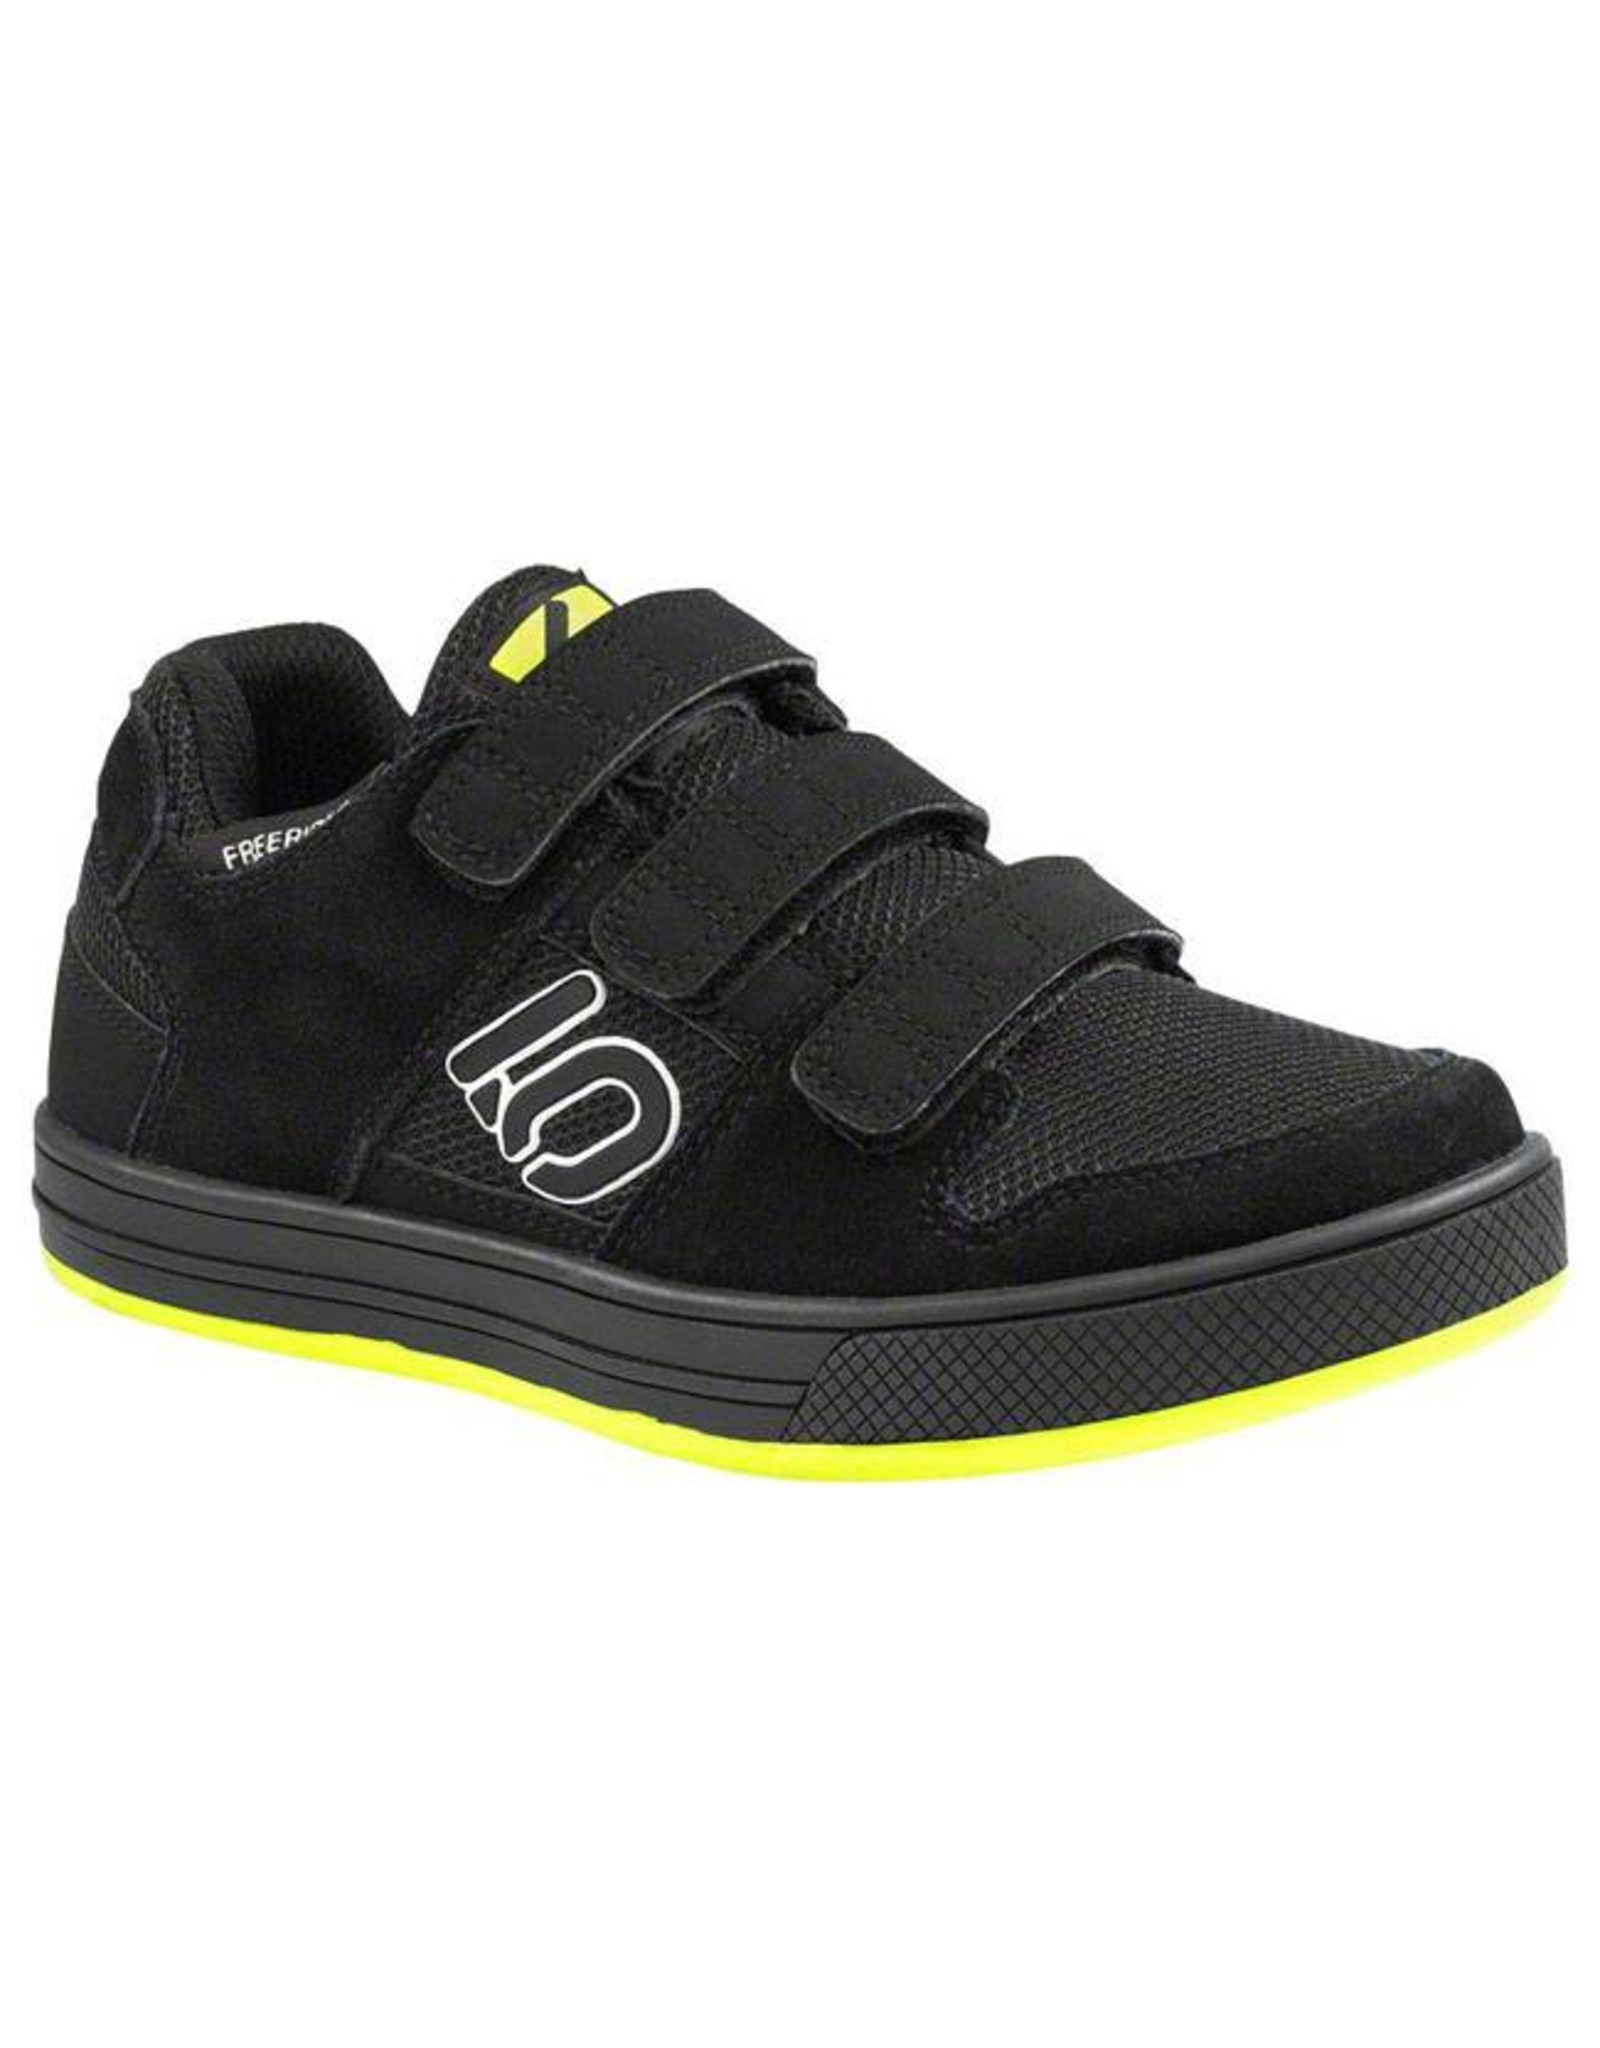 Five Ten Five Ten Freerider Kid's Flat Pedal Shoe: Black 1